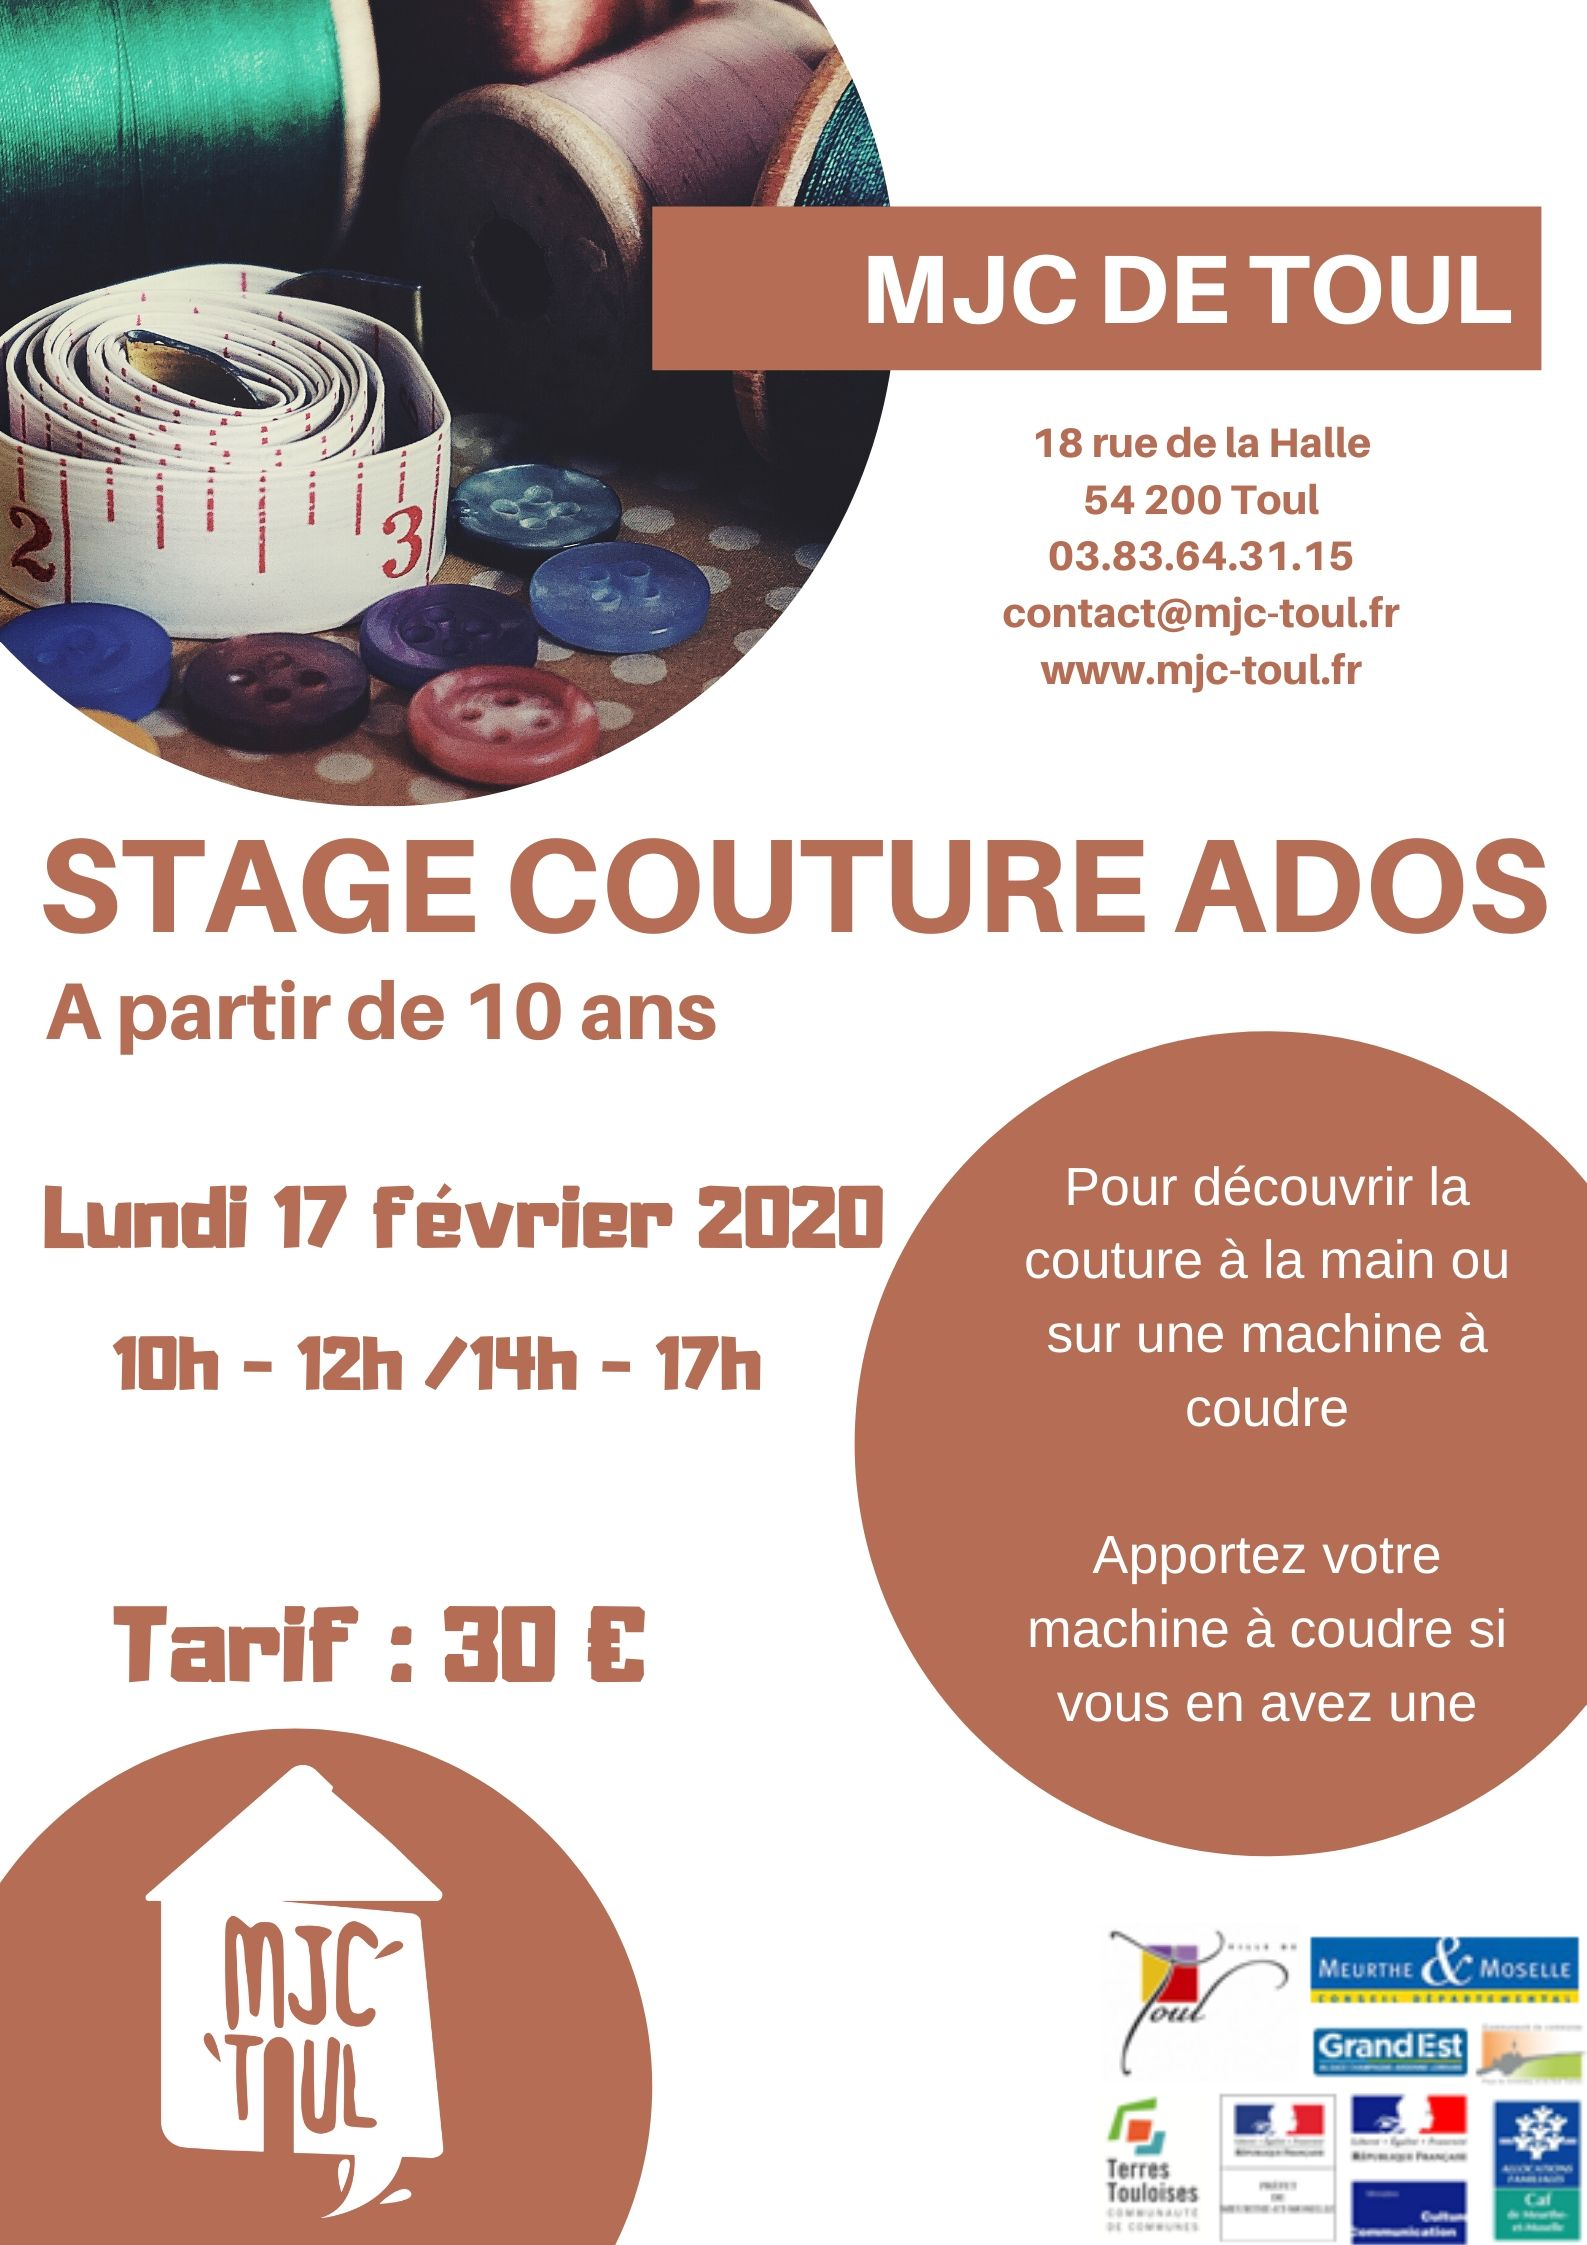 STAGE COUTURE ADOS